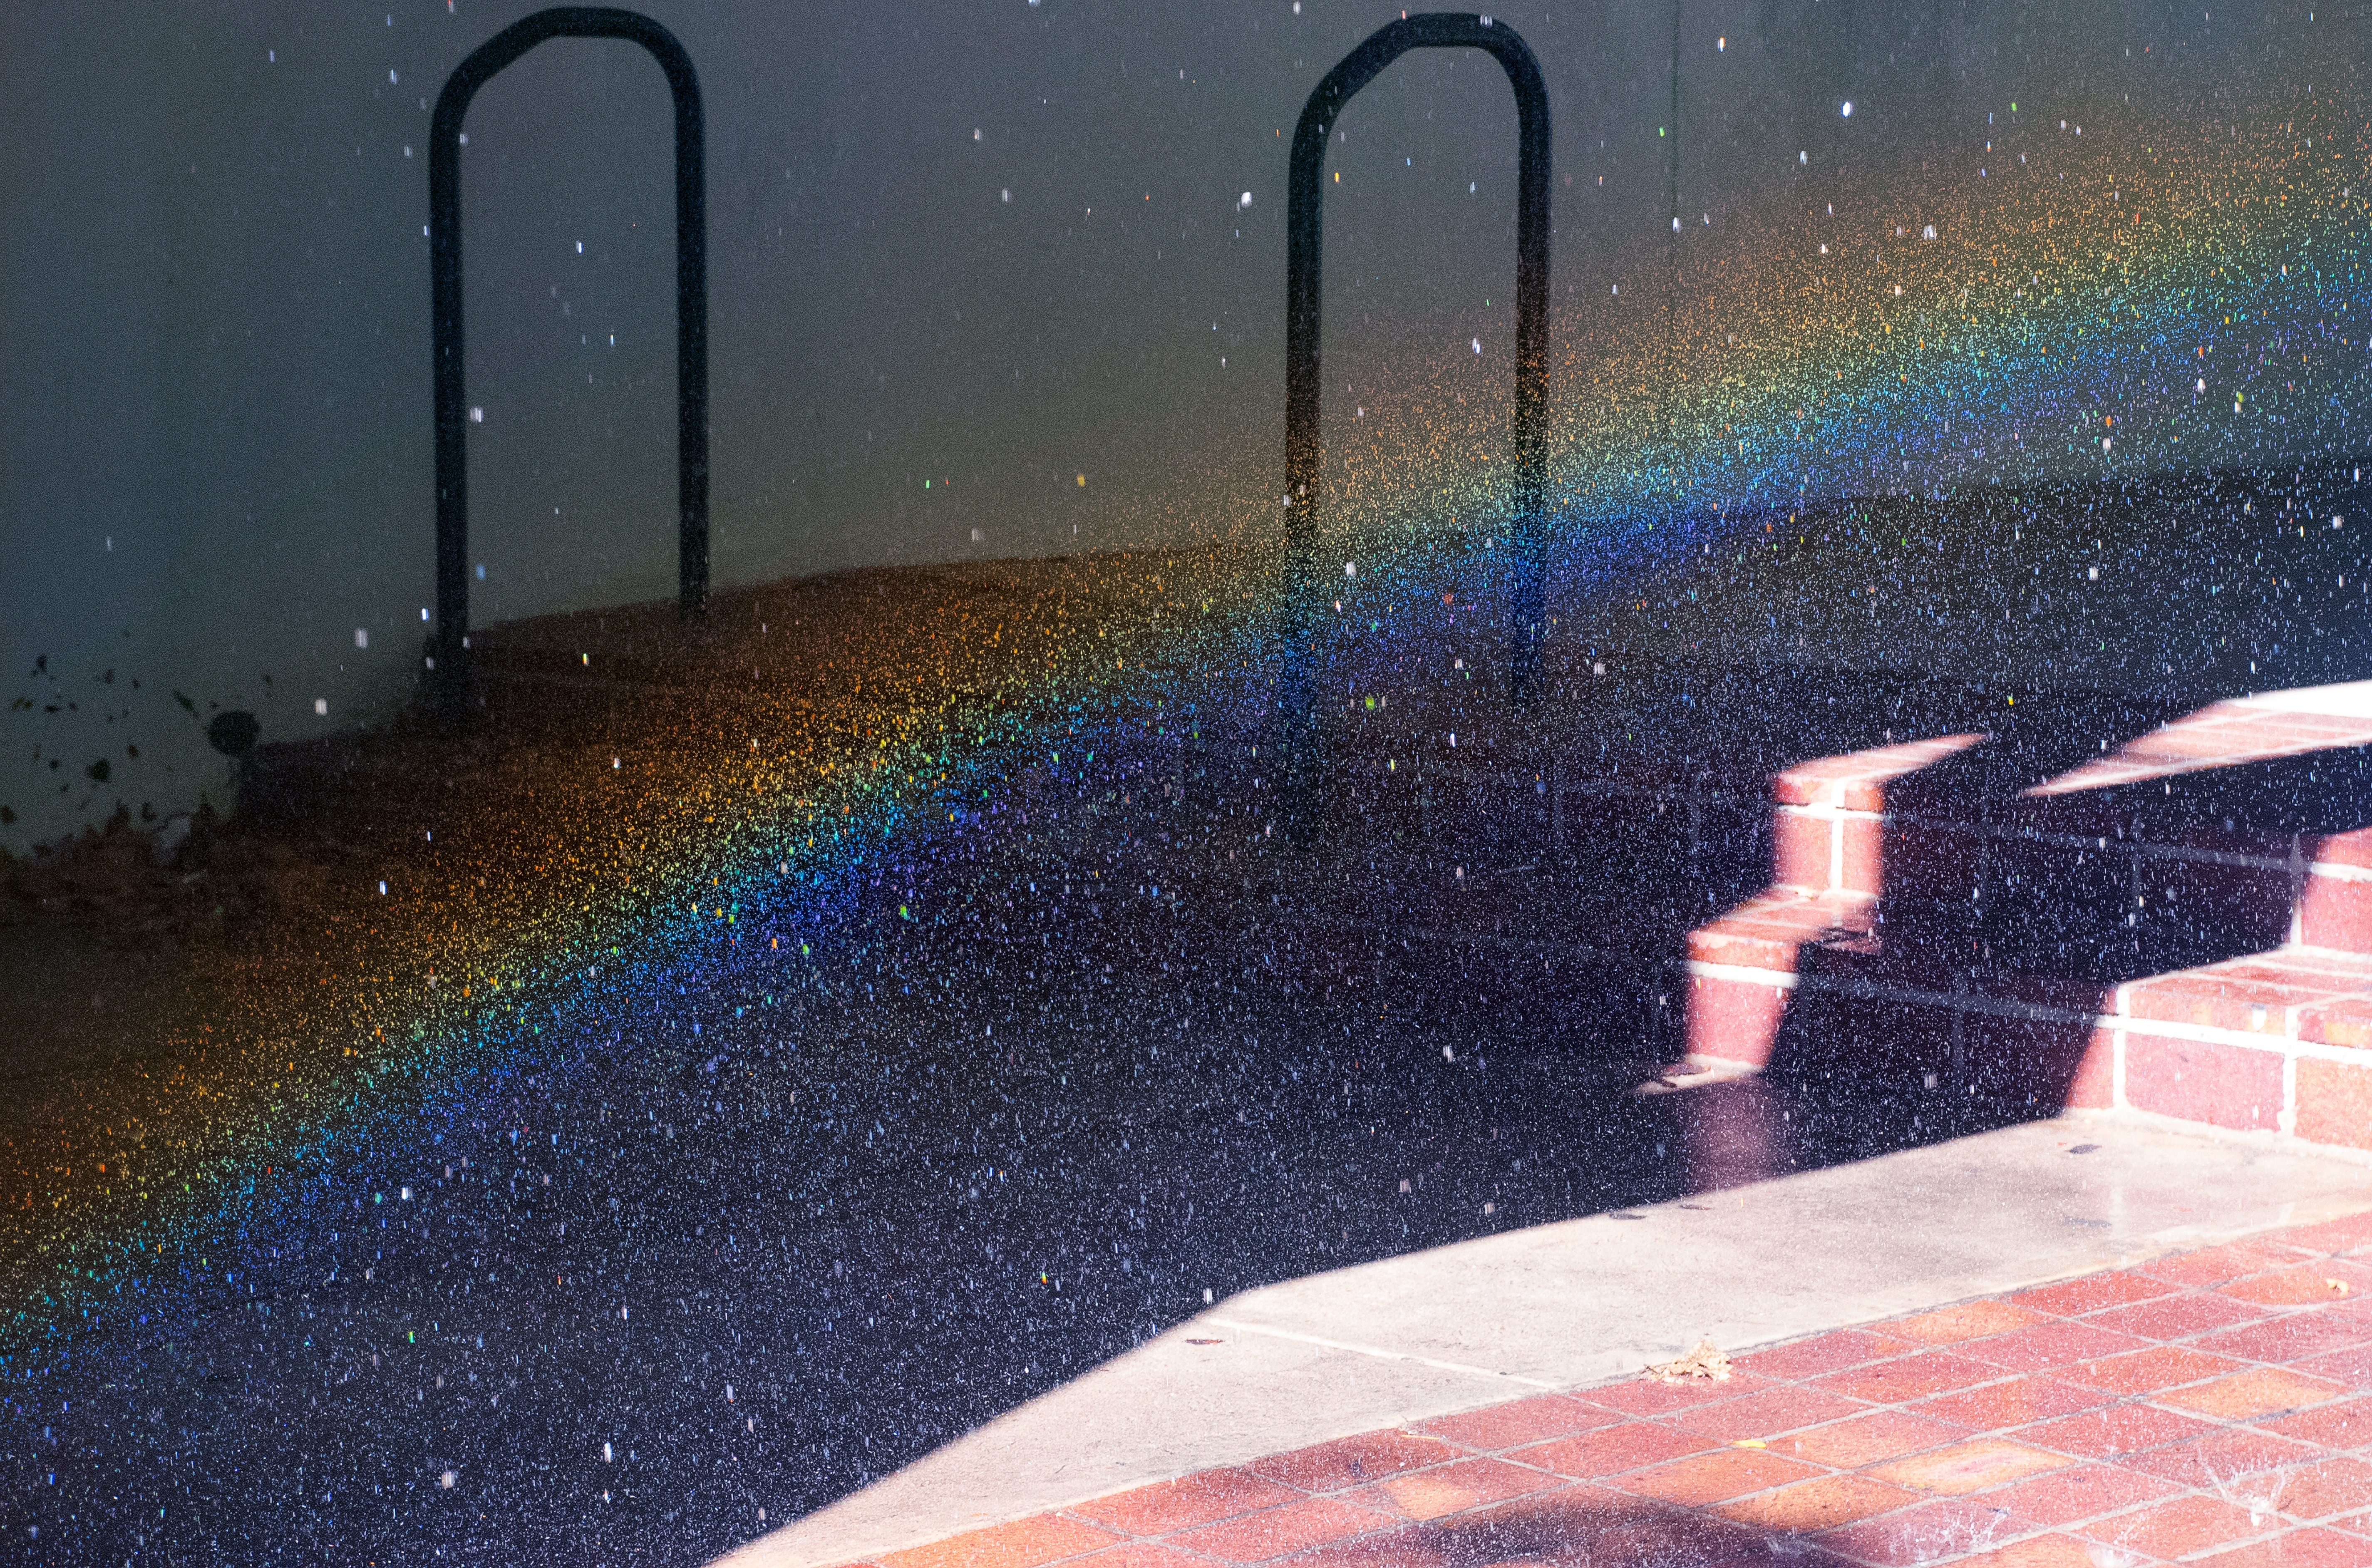 Brick staircase covered with rainbow light particles.